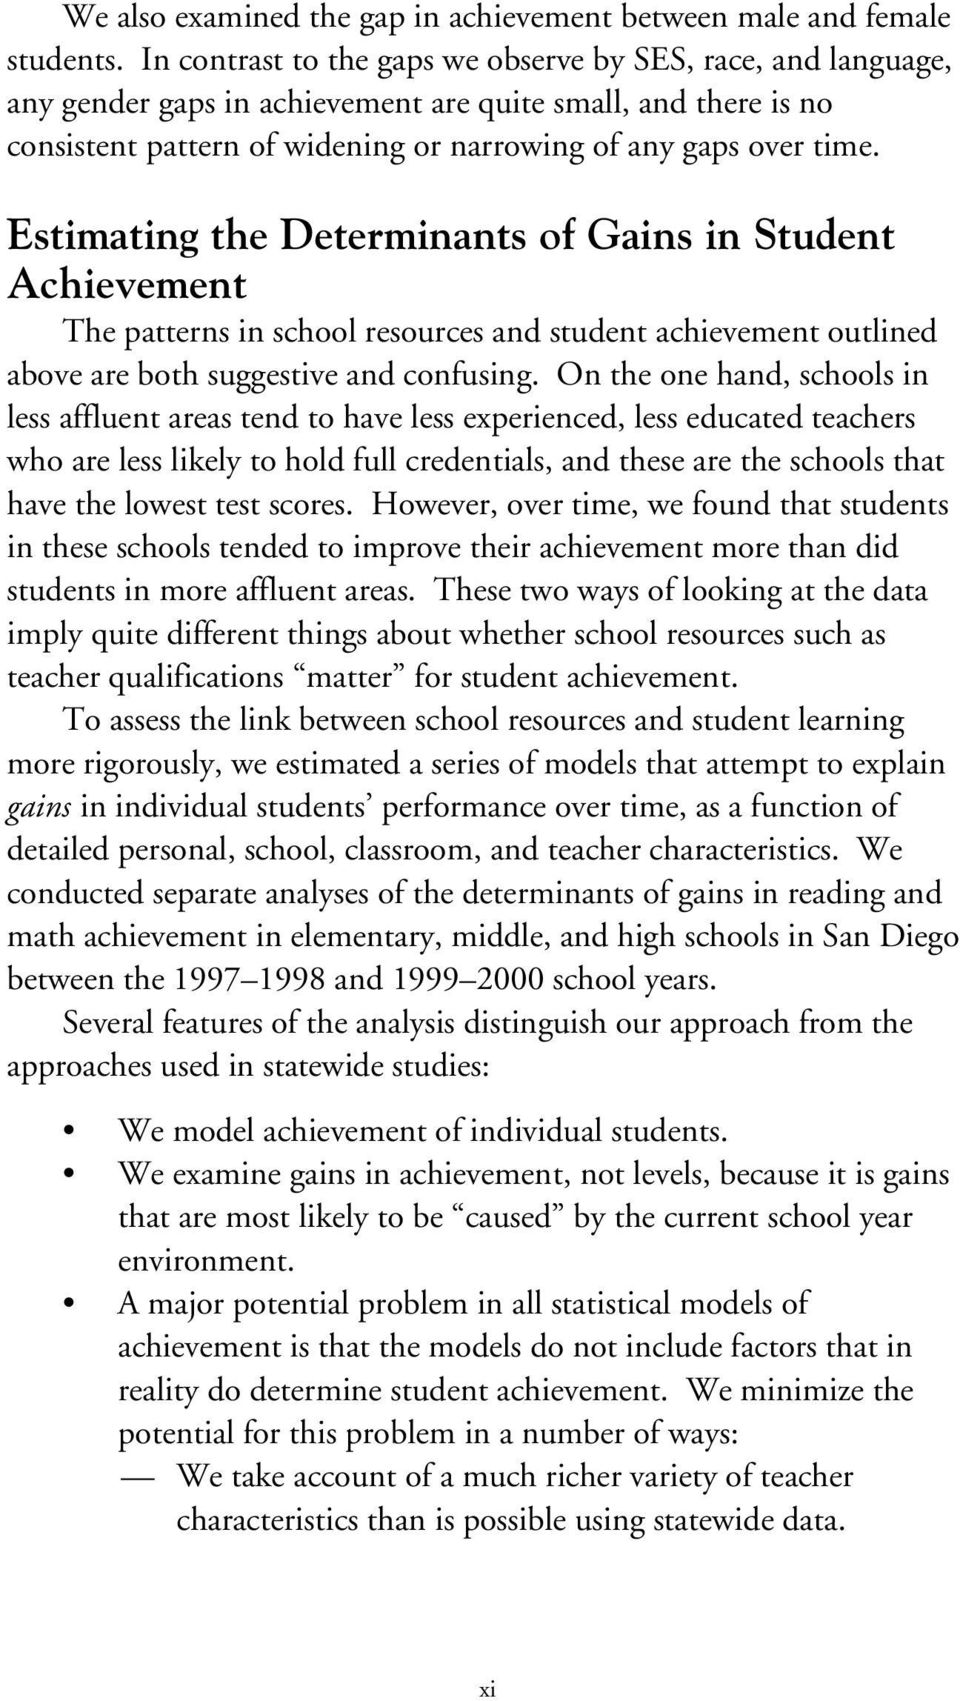 Estimating the Determinants of Gains in Student Achievement The patterns in school resources and student achievement outlined above are both suggestive and confusing.